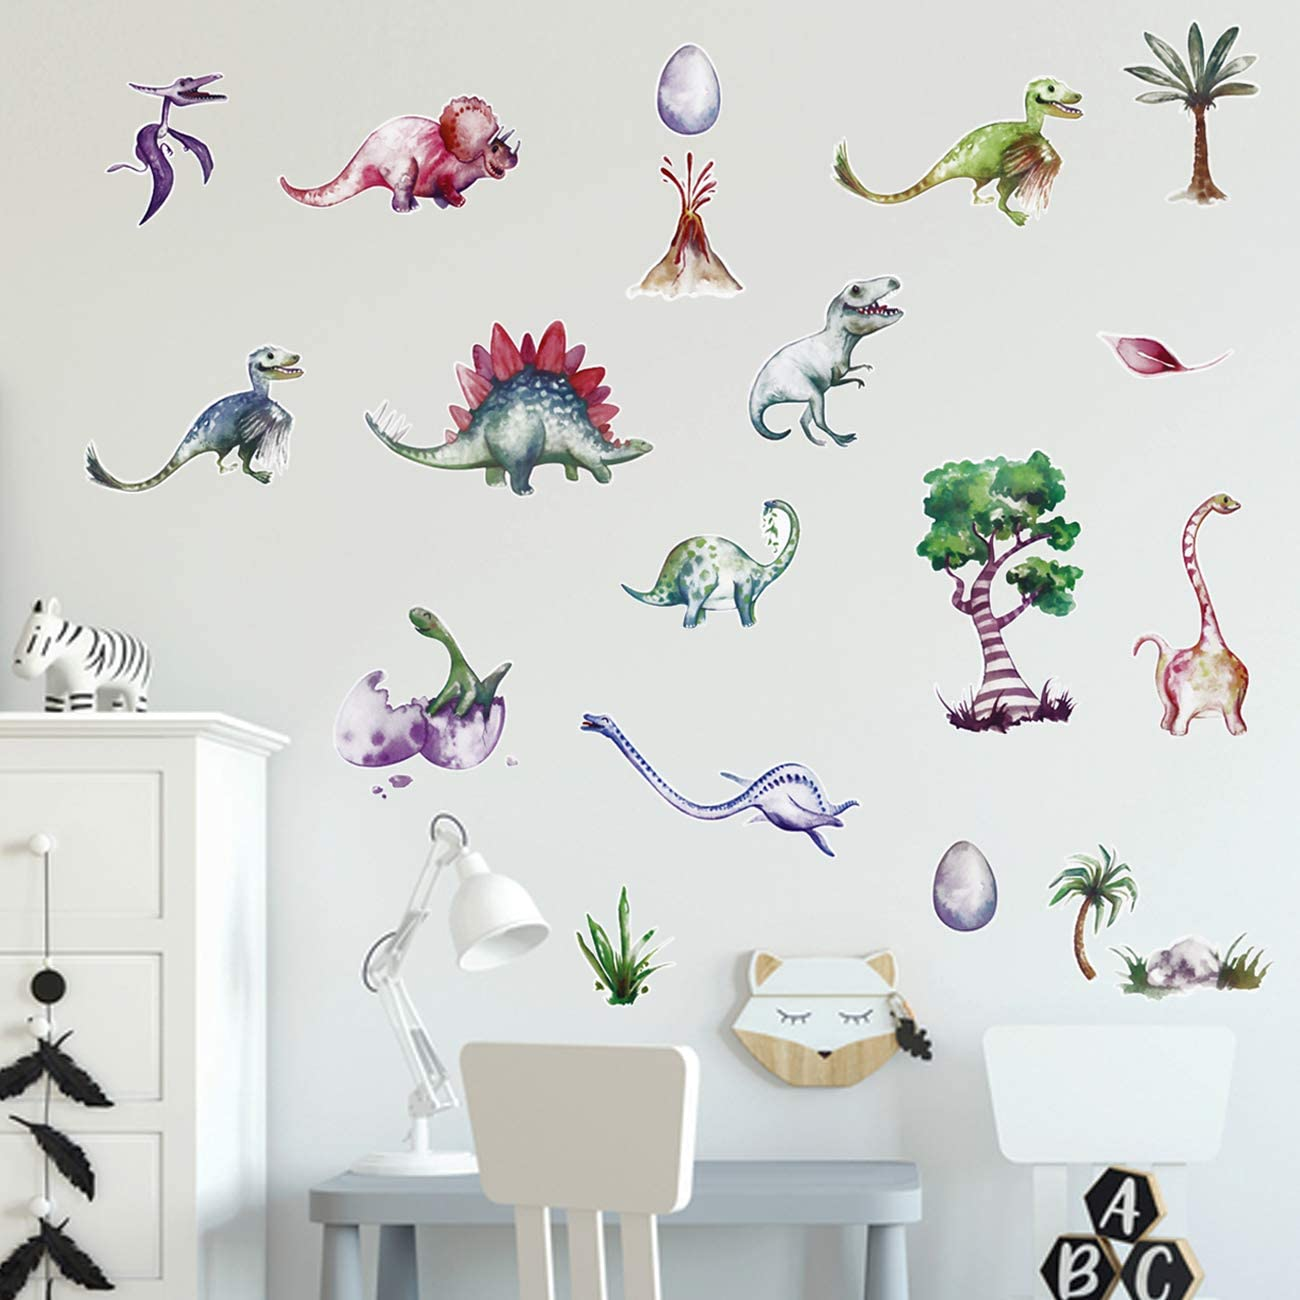 Dinosaur Wall Decals Dinosaur Room Decor for Boys Bedroom Living Room Wall Stickers Decoration 12x24